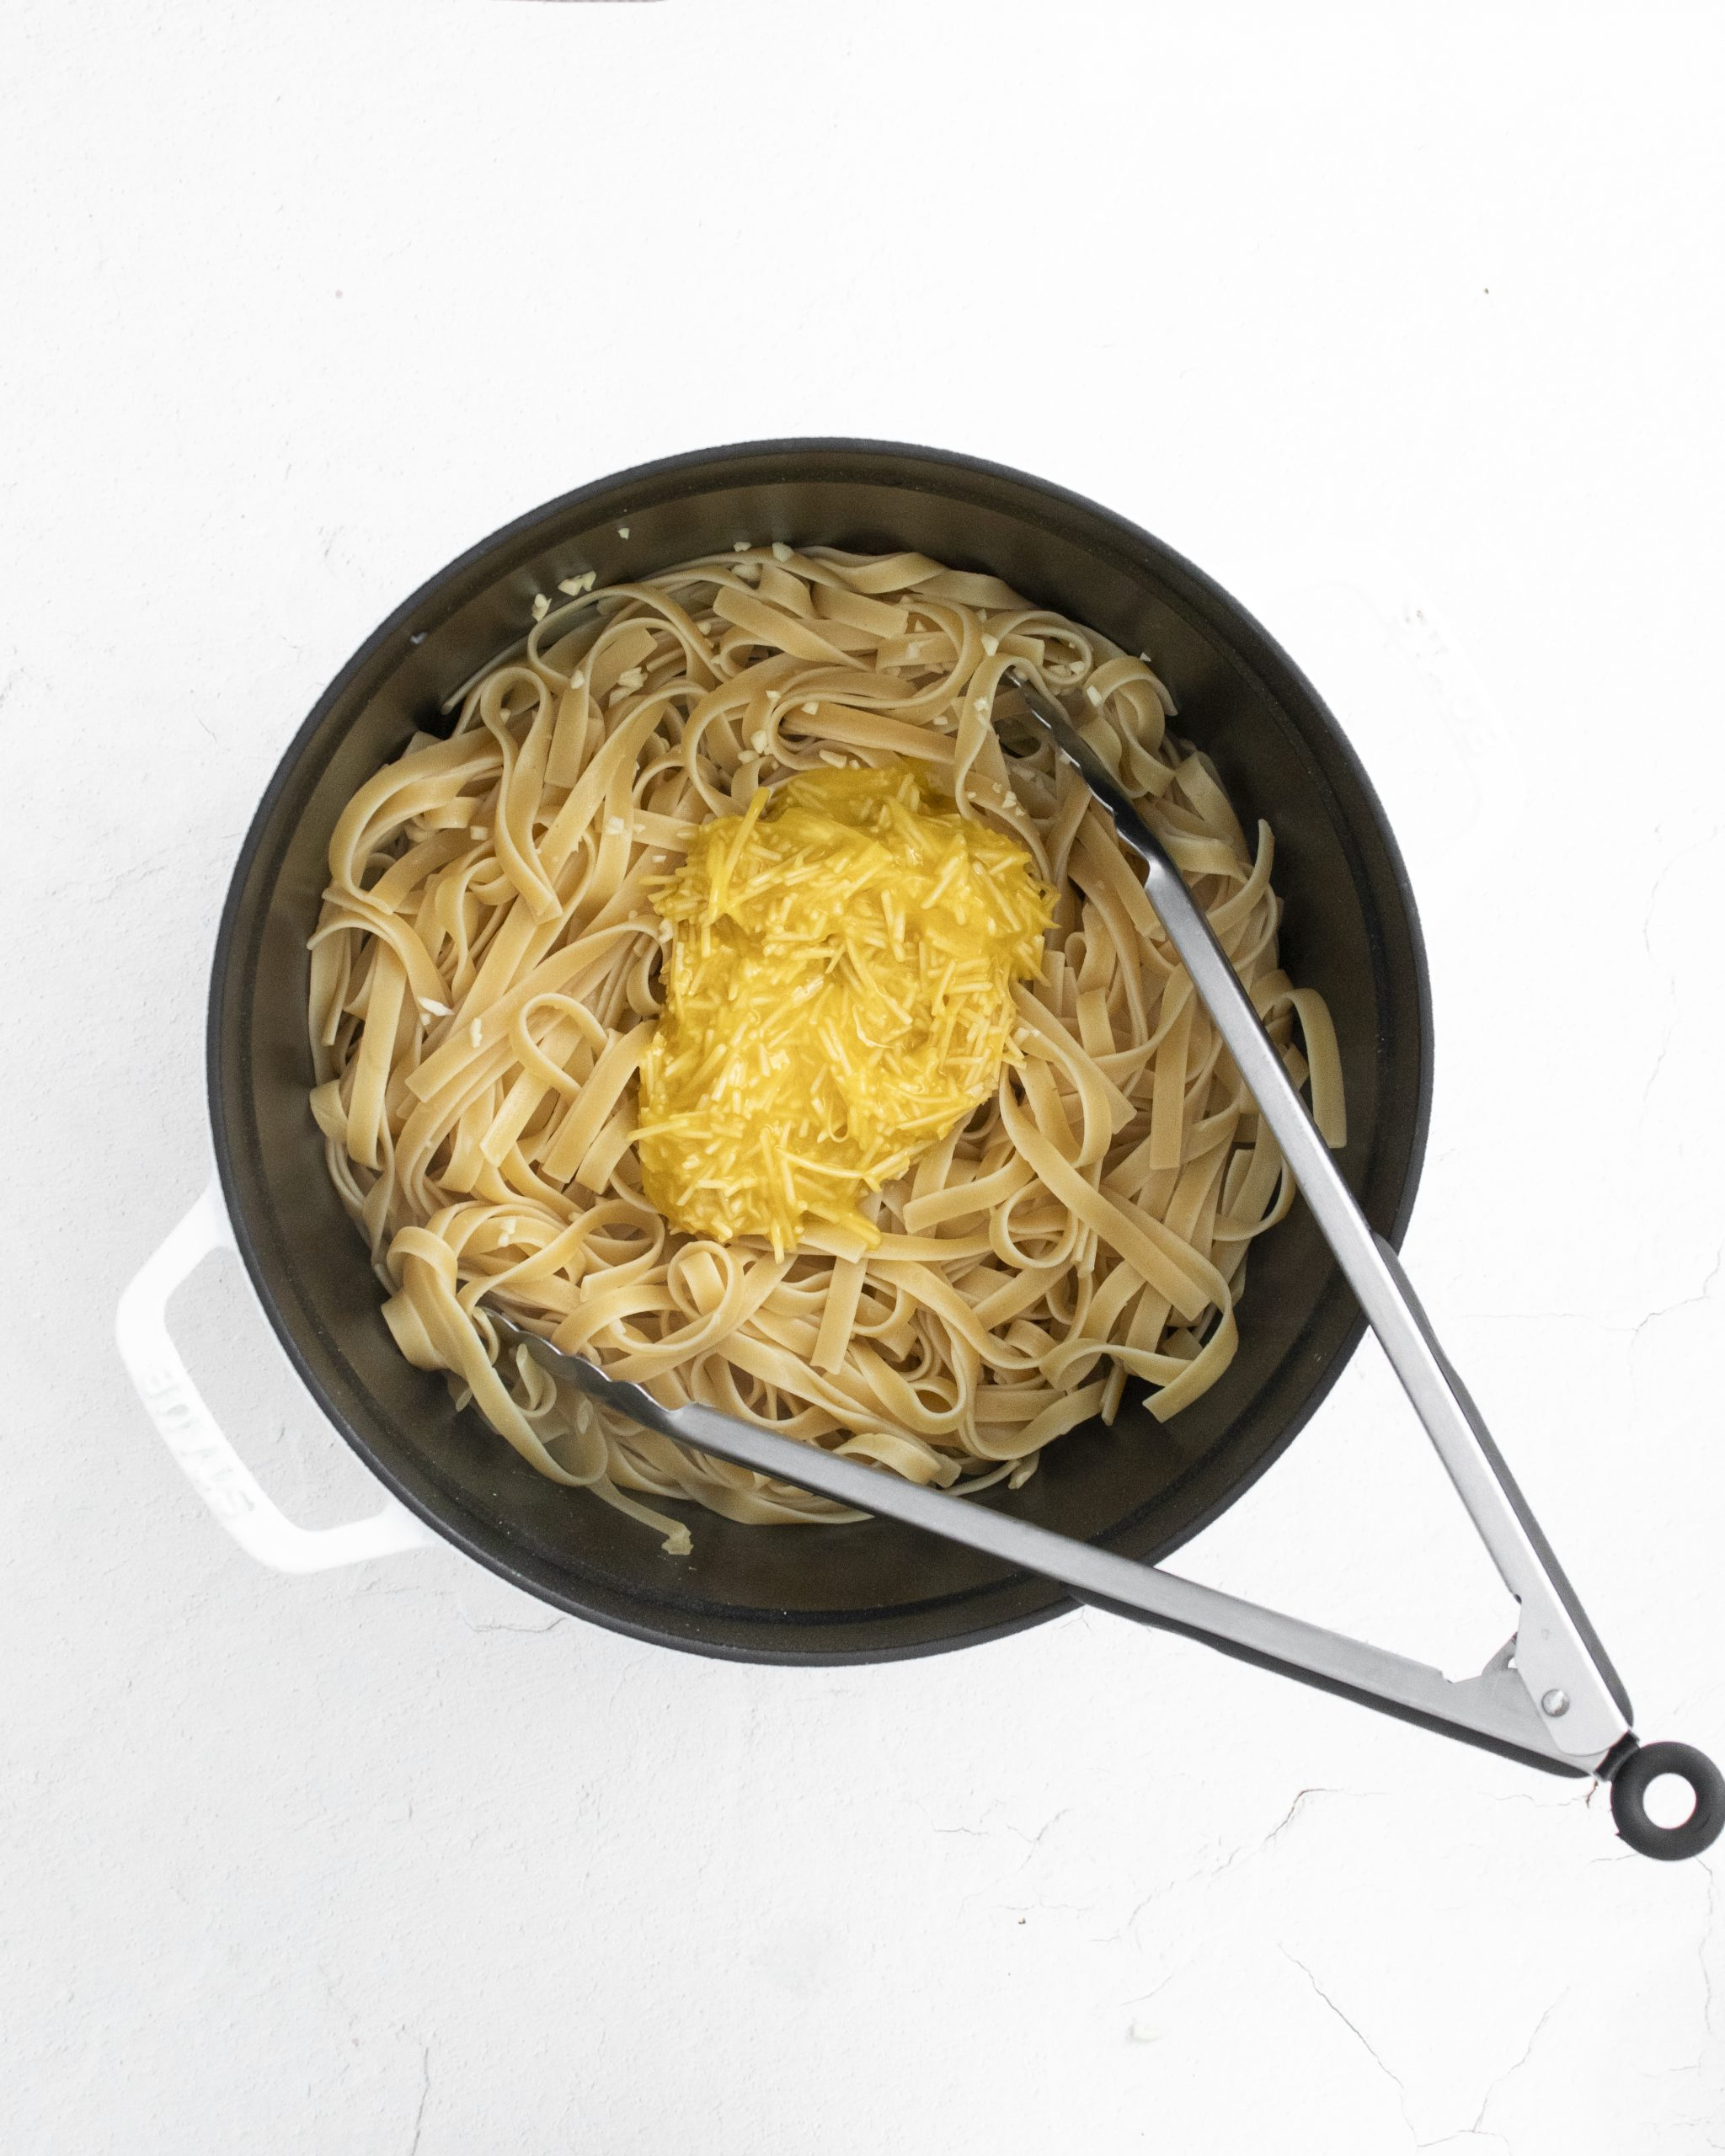 picture of carbonara being poured onto cooked pasta noodles